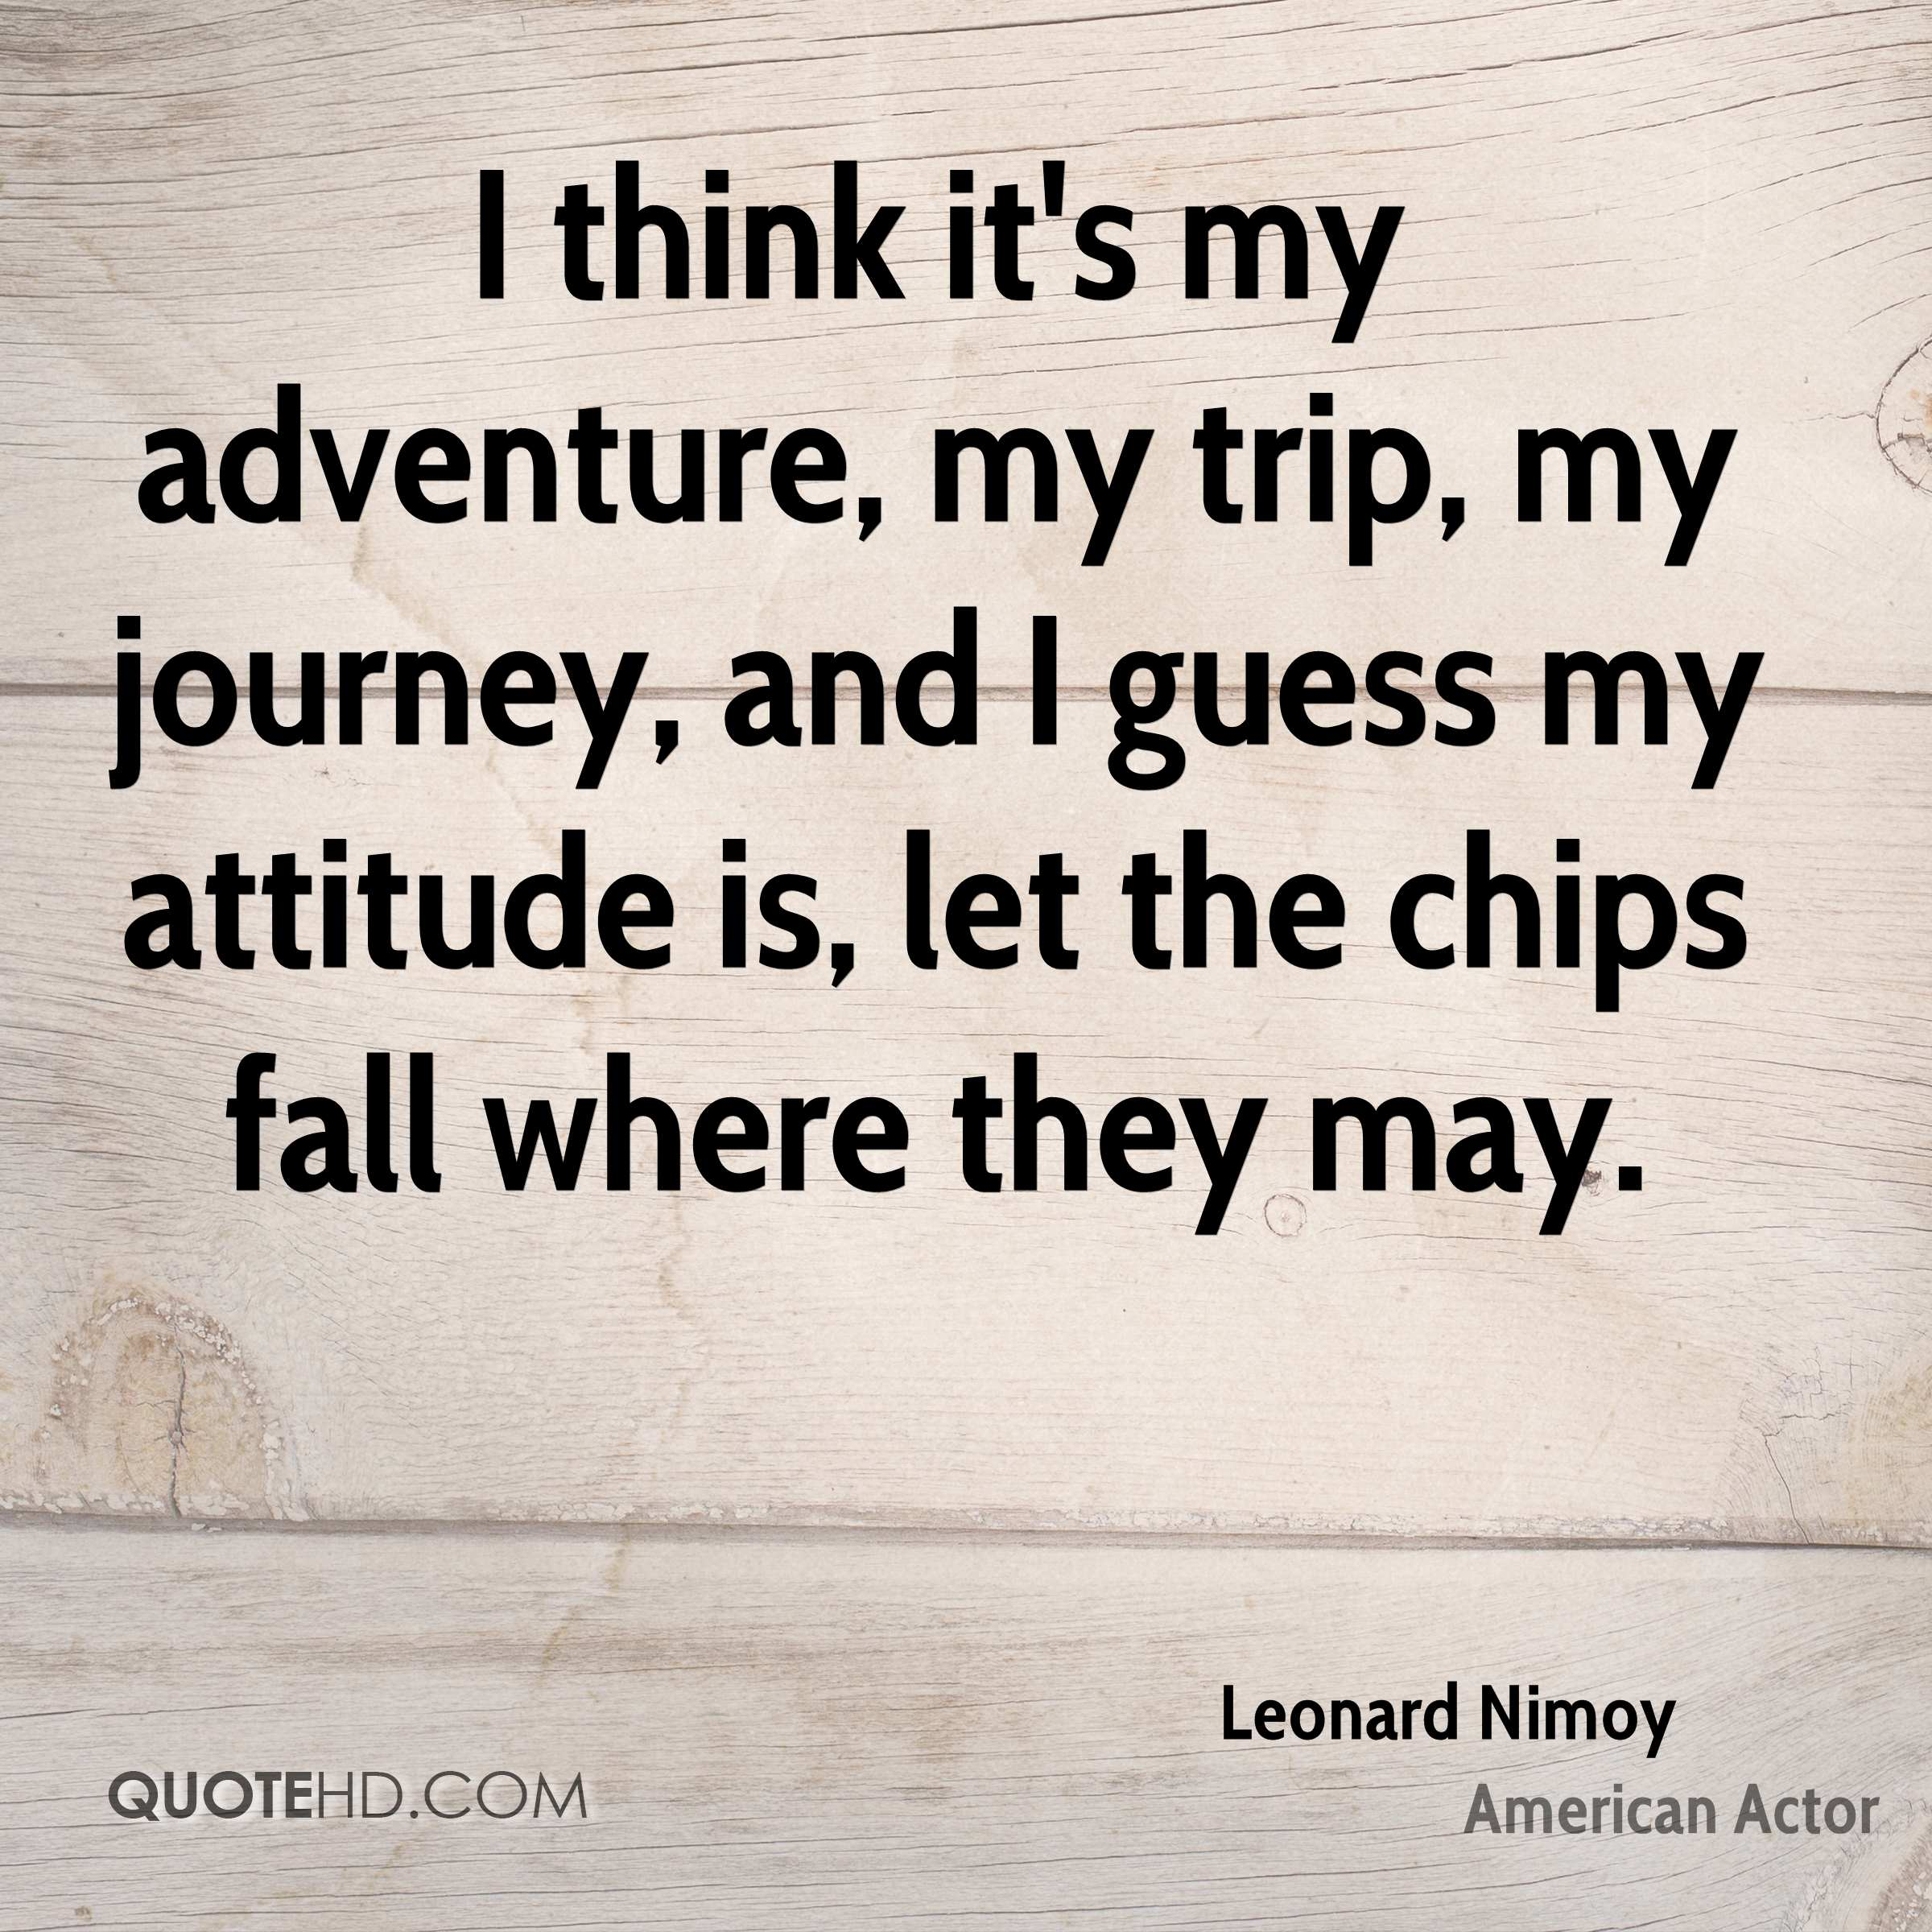 I think it's my adventure, my trip, my journey, and I guess my attitude is, let the chips fall where they may.